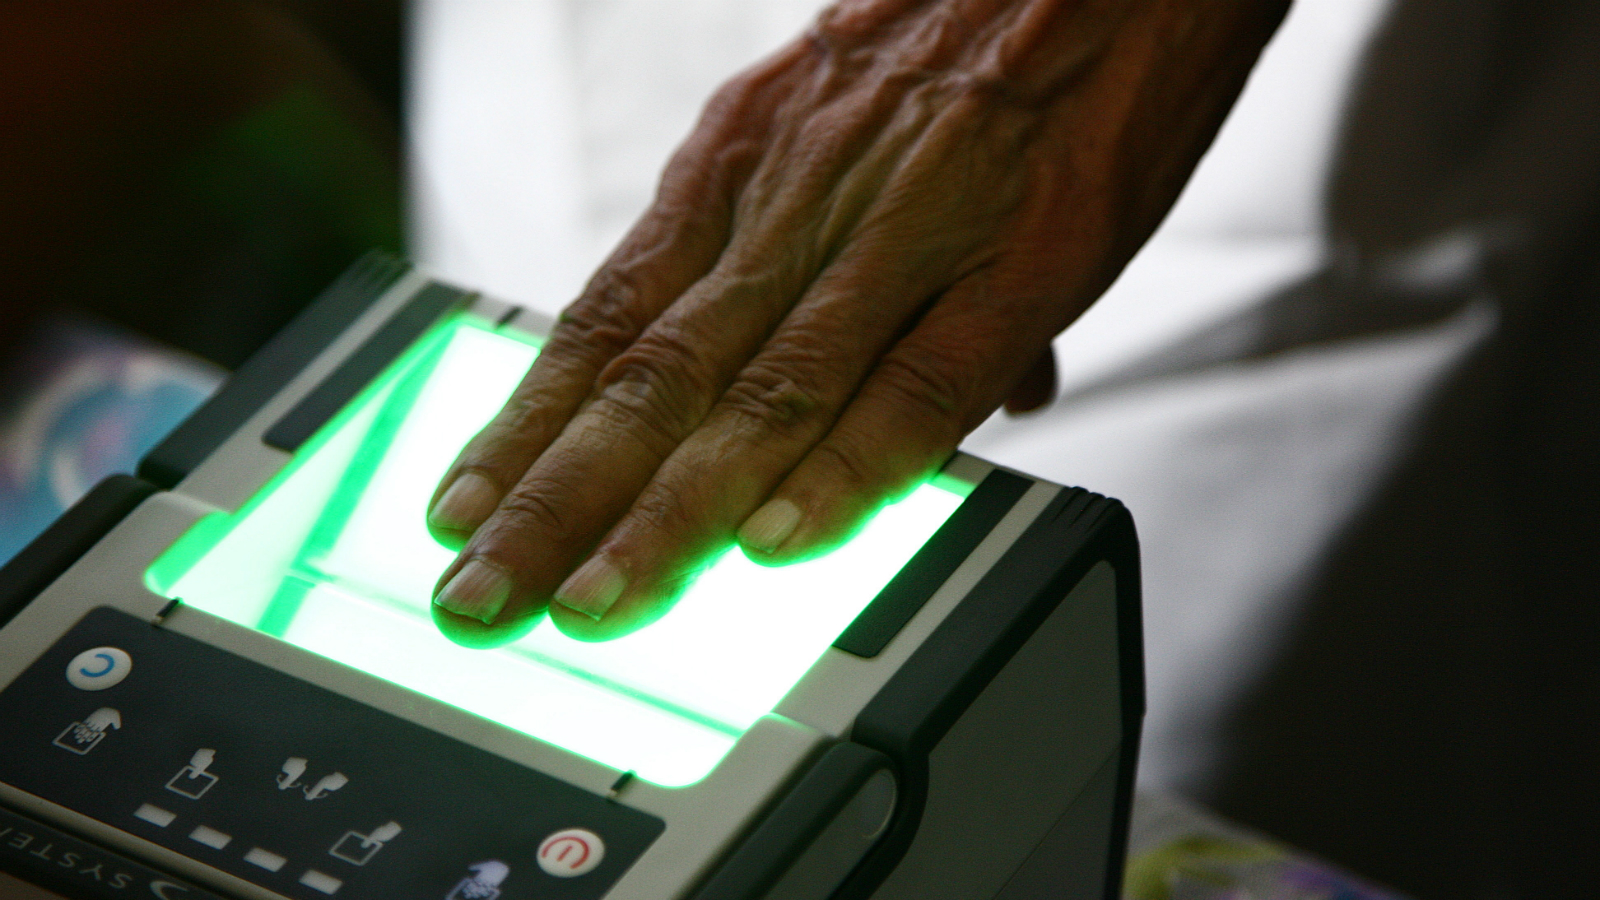 An Indian man scans his finger prints for enrollment of Aadhaar Number/ UID Card in Old Bhopal, Madhya Pradesh, India on 29 July 2011. The Unique Identification Authority of India (UIDAI) is an agency of the Government of India responsible for implementing the envisioned AADHAAR a unique identification project in India. The authority will aim at providing a unique number to all Indians and would provide a database of residents containing very simple data in biometrics. It is believed that Unique National IDs will help address the rigged state elections and widespread embezzlement that affects subsidies and poverty alleviation programs and addressing illegal immigration into India and terrorist threats is another goal of the program. Aadhar card to become the single source of identity verification card in India for many Sources. It provides the government with accirate and enough information on any individual residents of India. It also provides online authentication services for agencies or companies those who wish to validate an individual identity, news reports said. Aadhaar is a 12-digit unique number which the Unique Identification Authority of India (UIDAI) will issue for all residents in India.